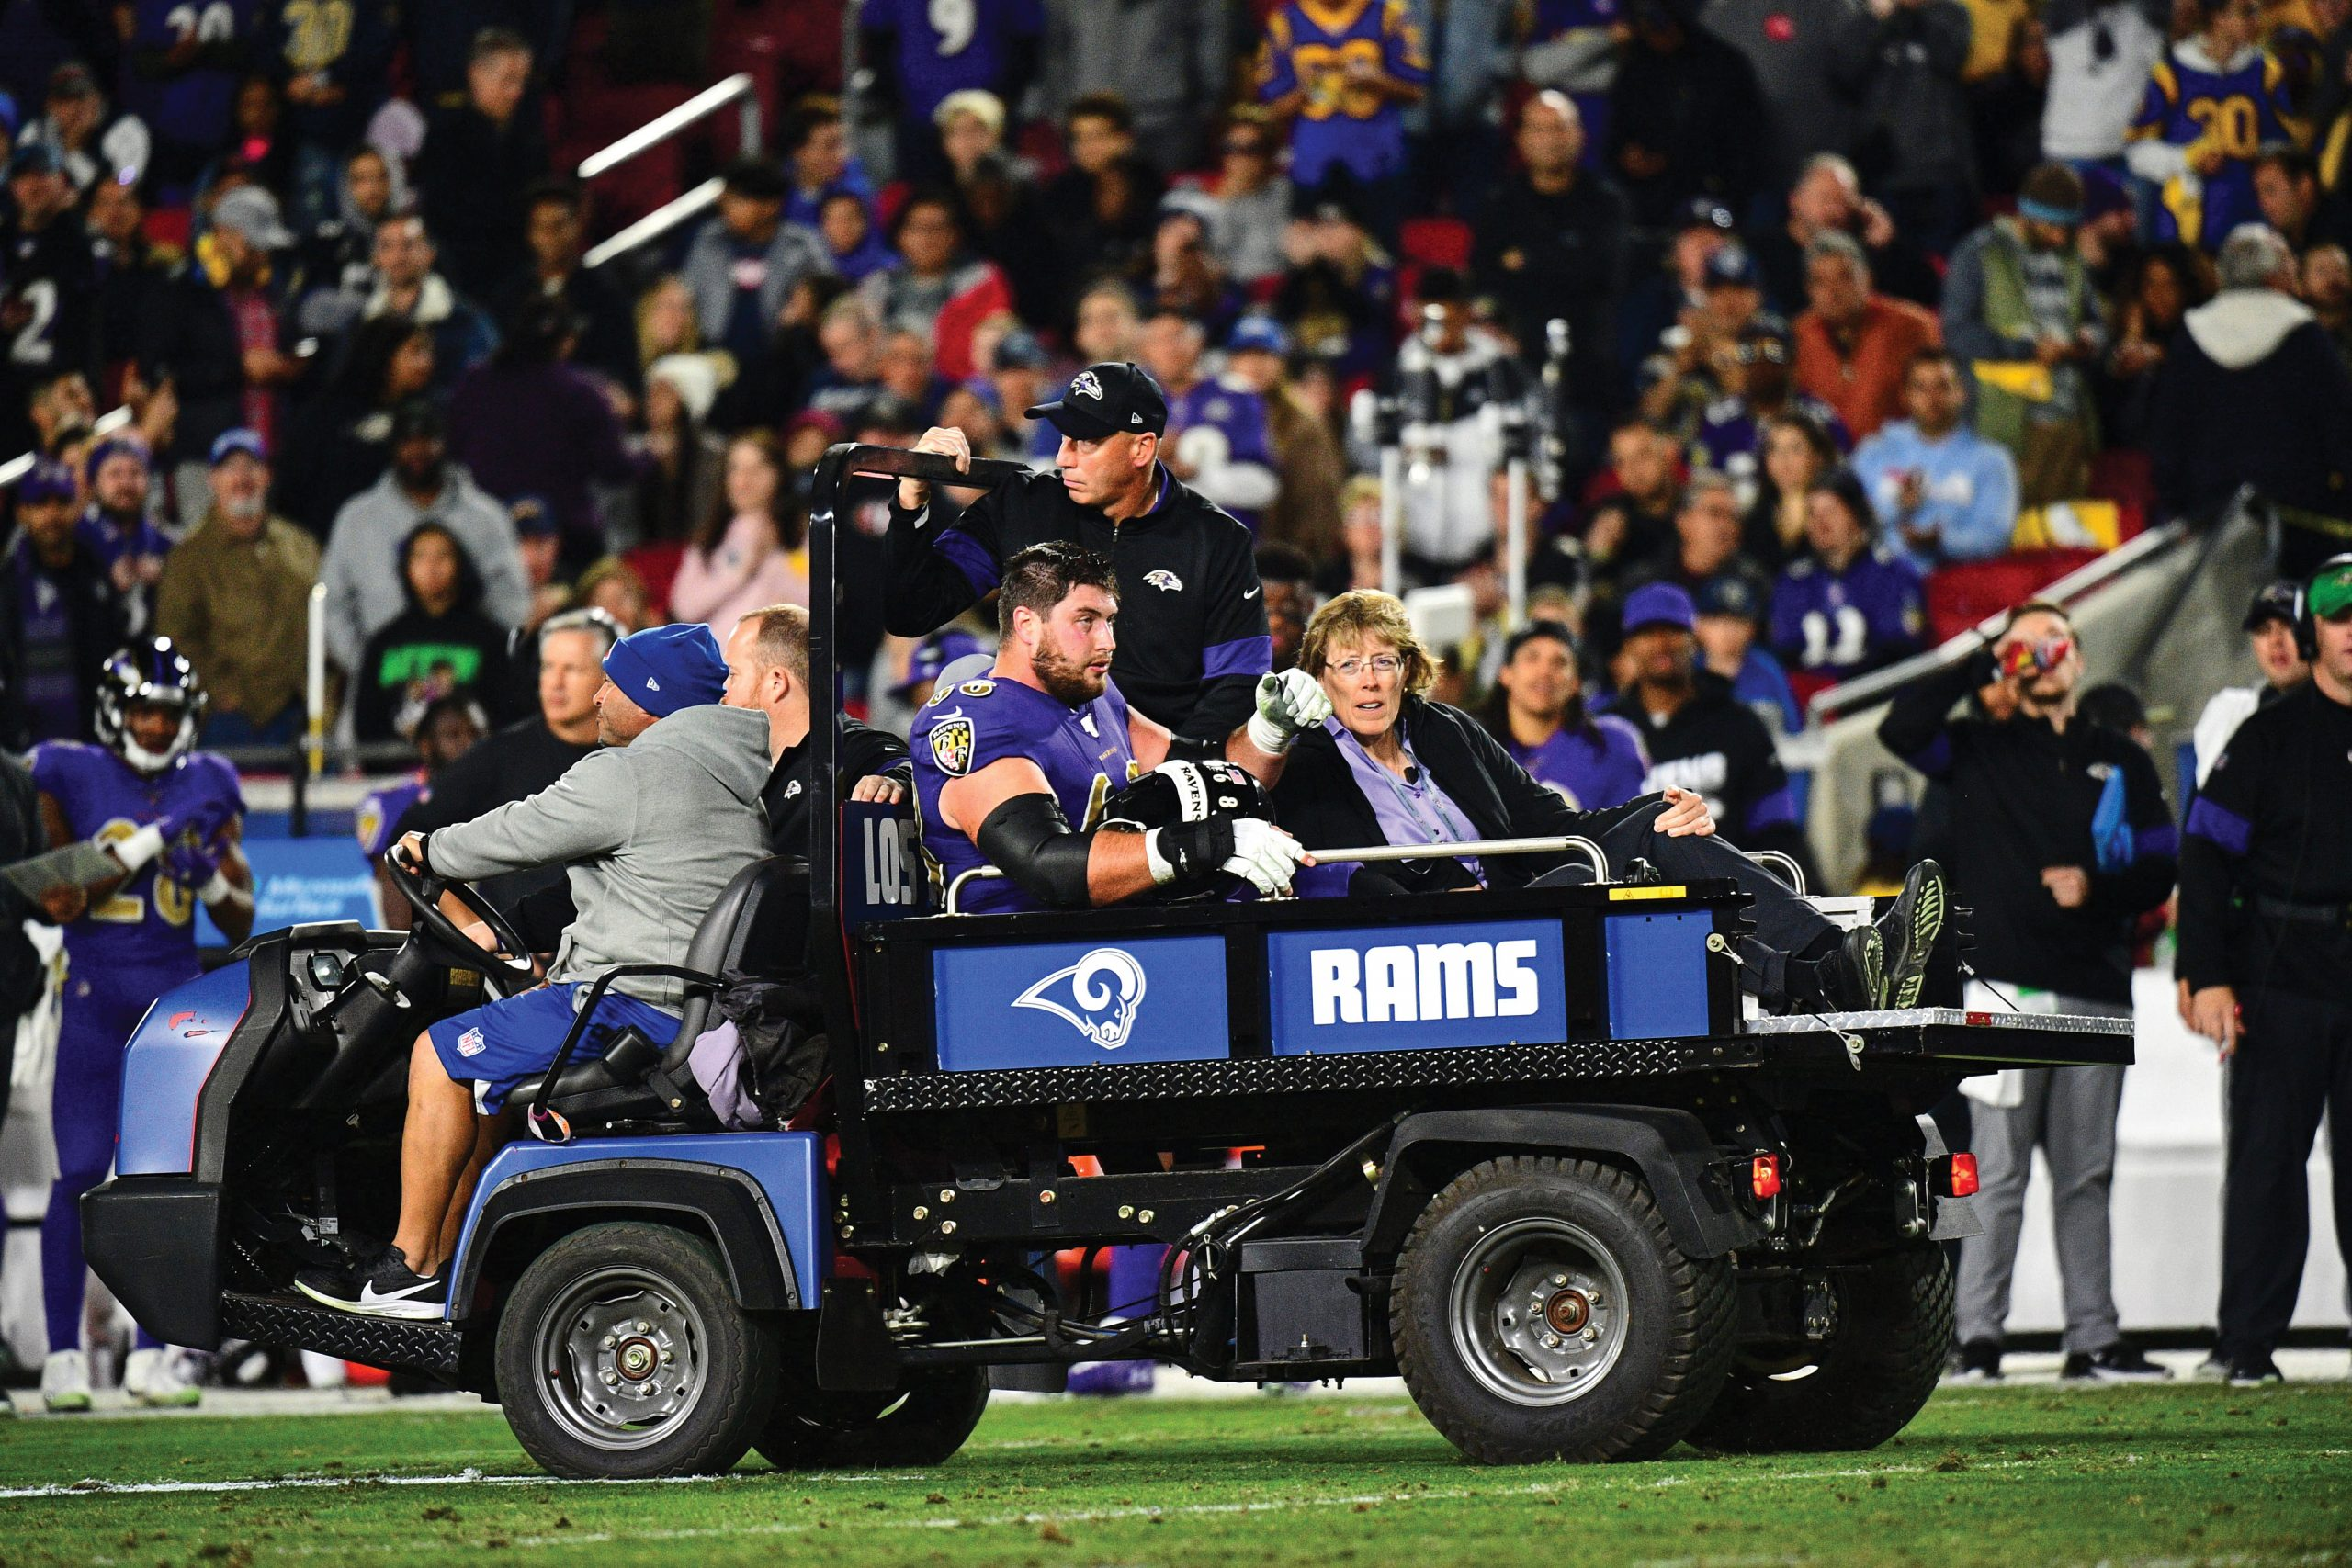 Baltimore Ravens Matt Skura (68) being carted off field with injury during game vs Los Angeles Rams at Los Angeles Memorial Coliseum.